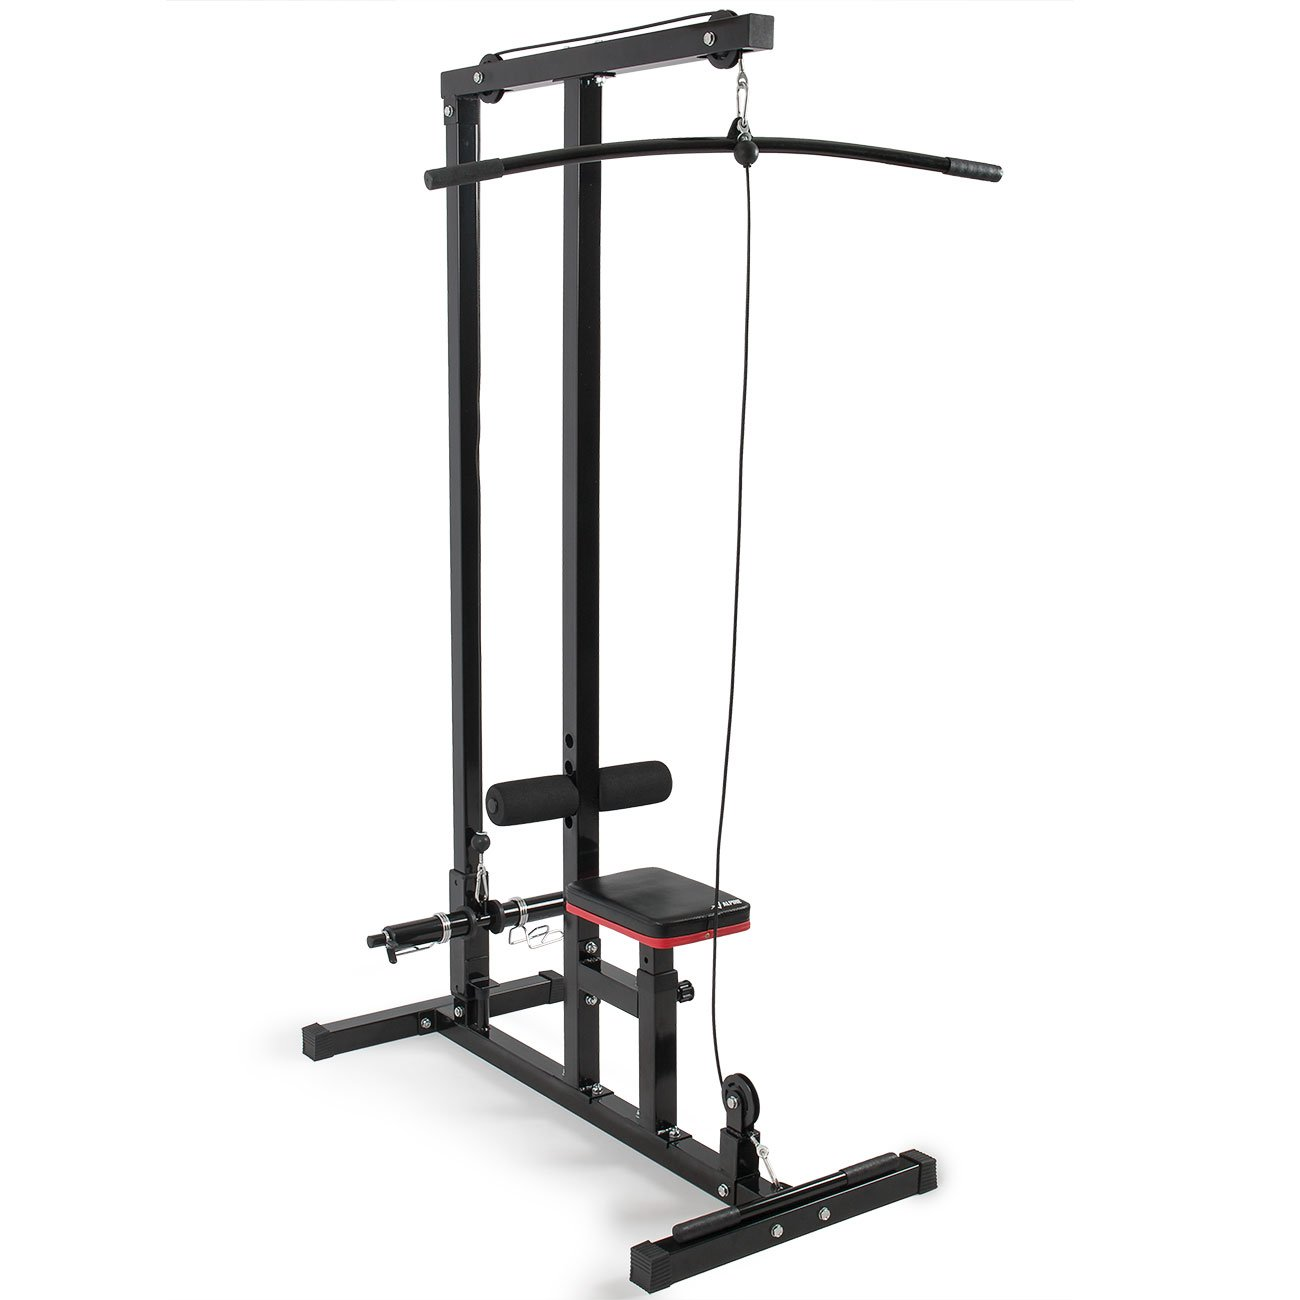 Akonza Lat Machine Low Row Cable Pull Down Fitness Closed Handle Attachment Pulldown by Akonza